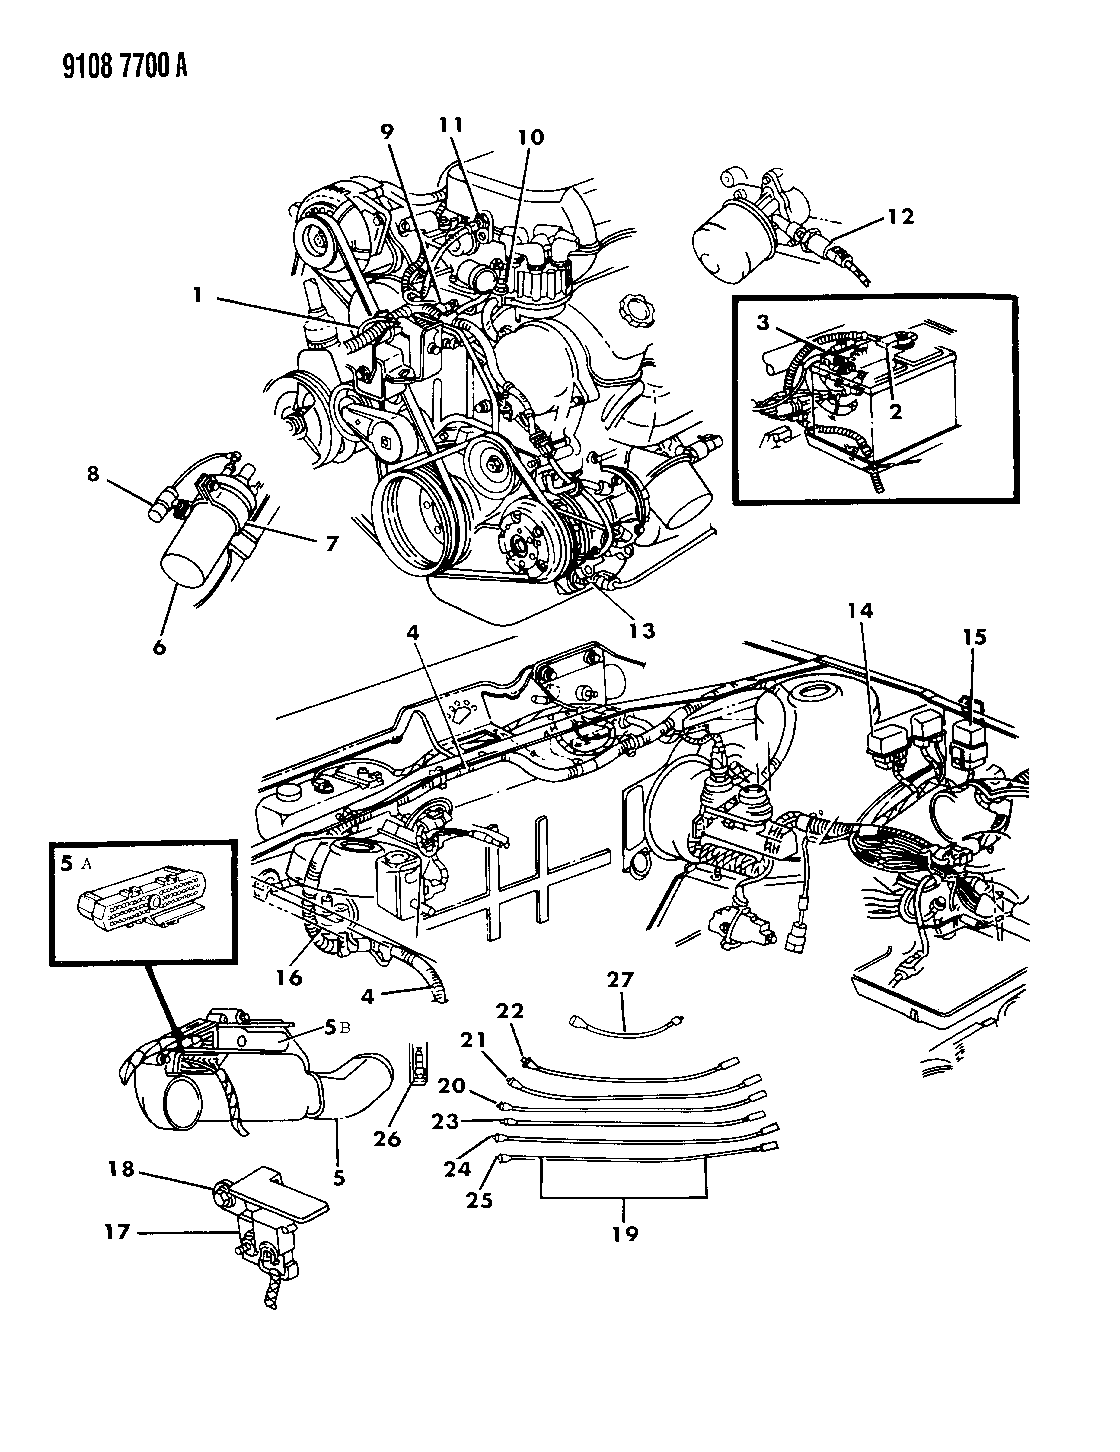 Dodge Dynasty Fuse Diagram Wiring Library 1991 Daytona Within 1989 Engine Front End Related Parts